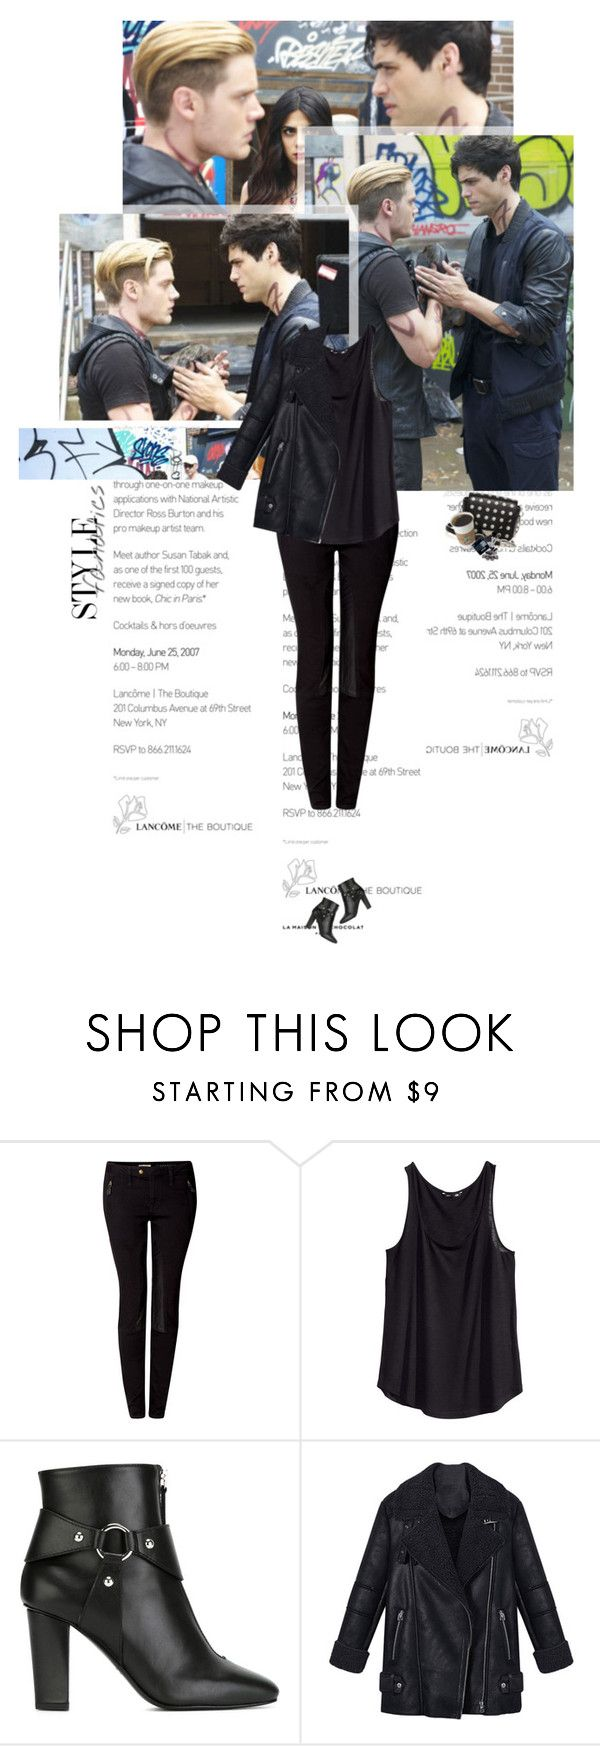 """Untitled 3634..."" by thplacebo ❤ liked on Polyvore featuring Burberry, H&M, Giuseppe Zanotti and Alexander Wang"